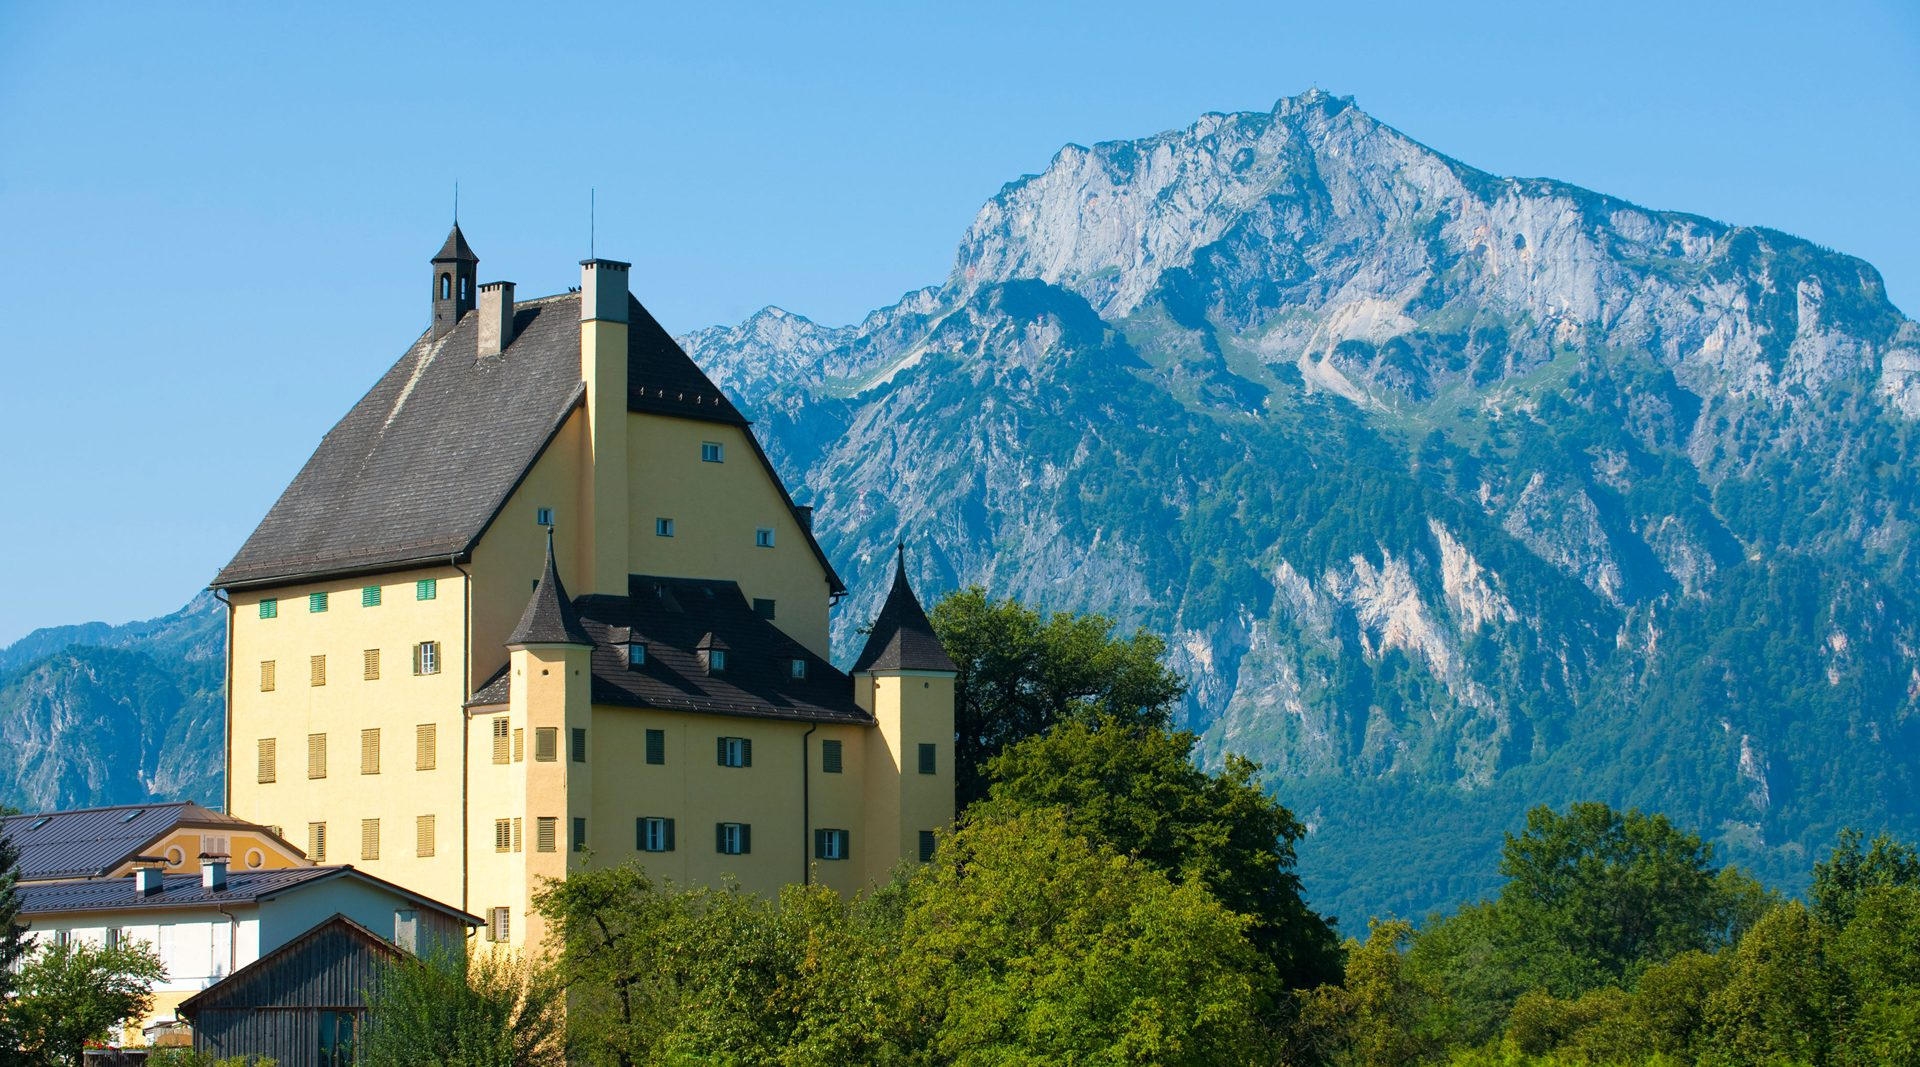 Schloss Goldenstein, in the background the Untersberg